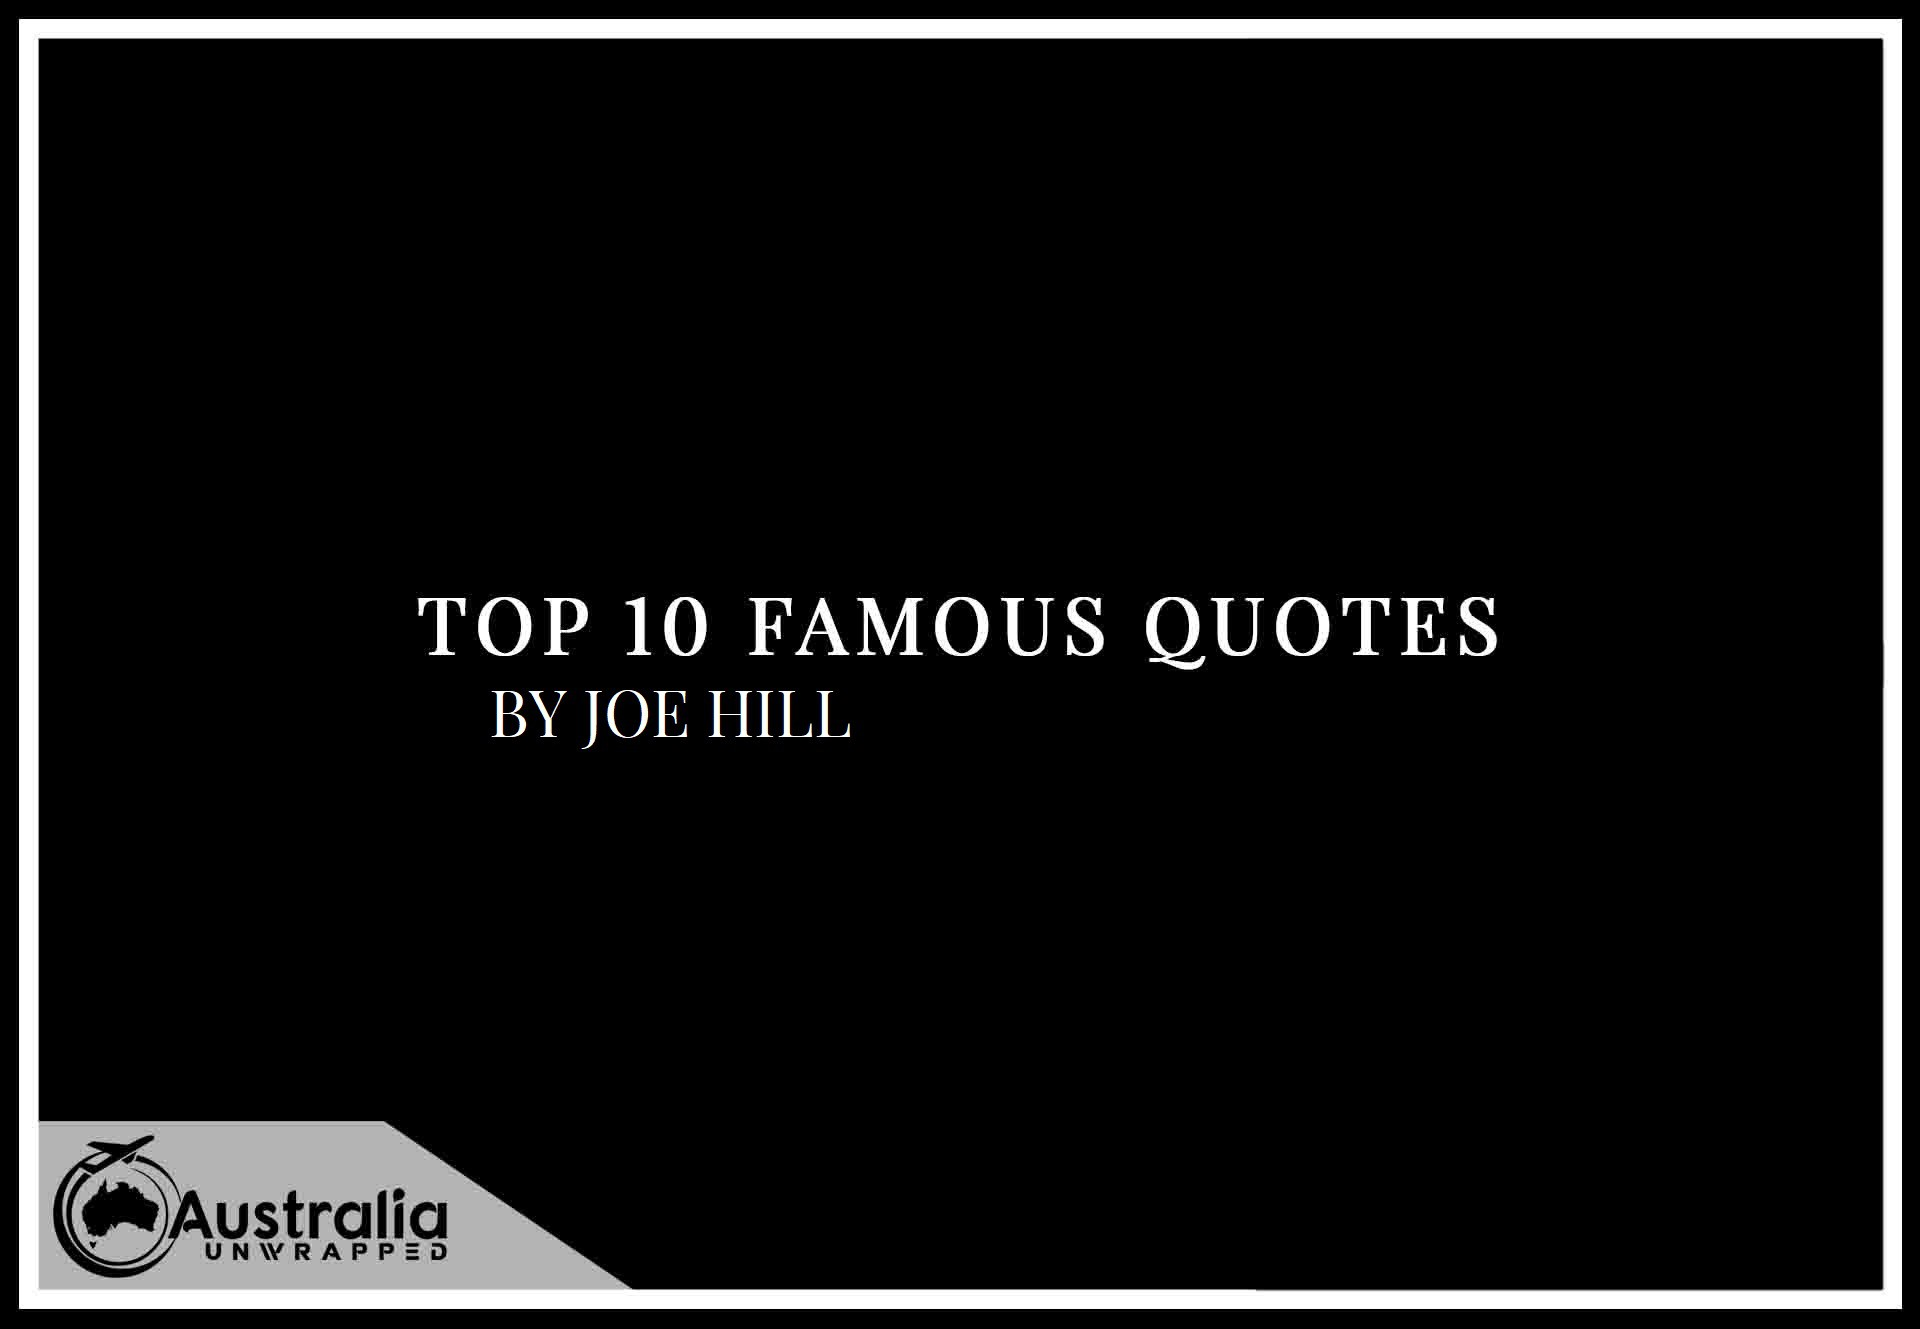 Top 10 Famous Quotes by Author Joe Hill